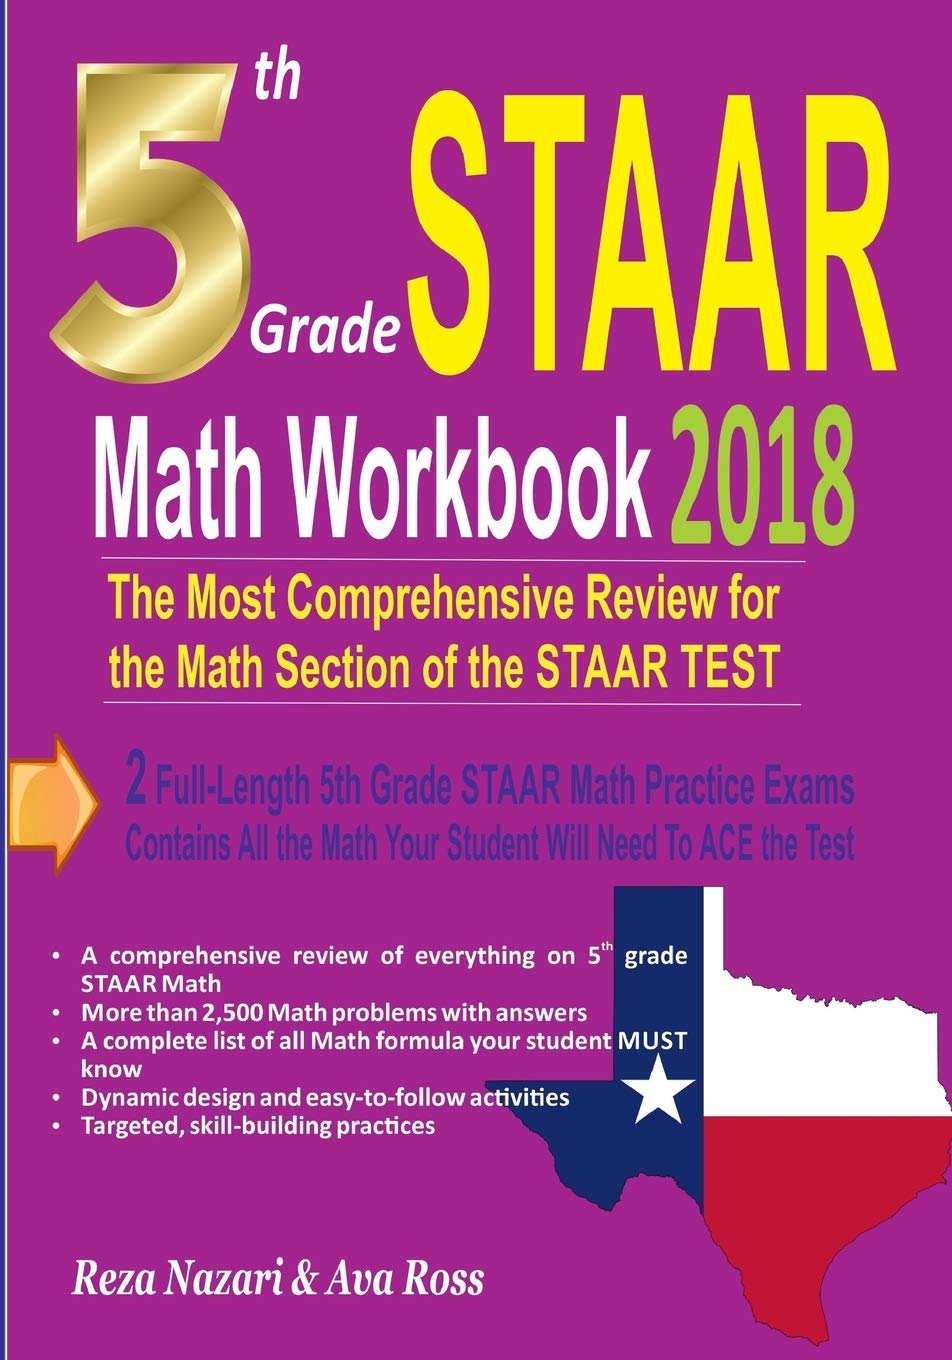 Download 5th Grade STAAR Math Workbook 2018: The Most Comprehensive Review for the Math Section of the STAAR TEST PDF